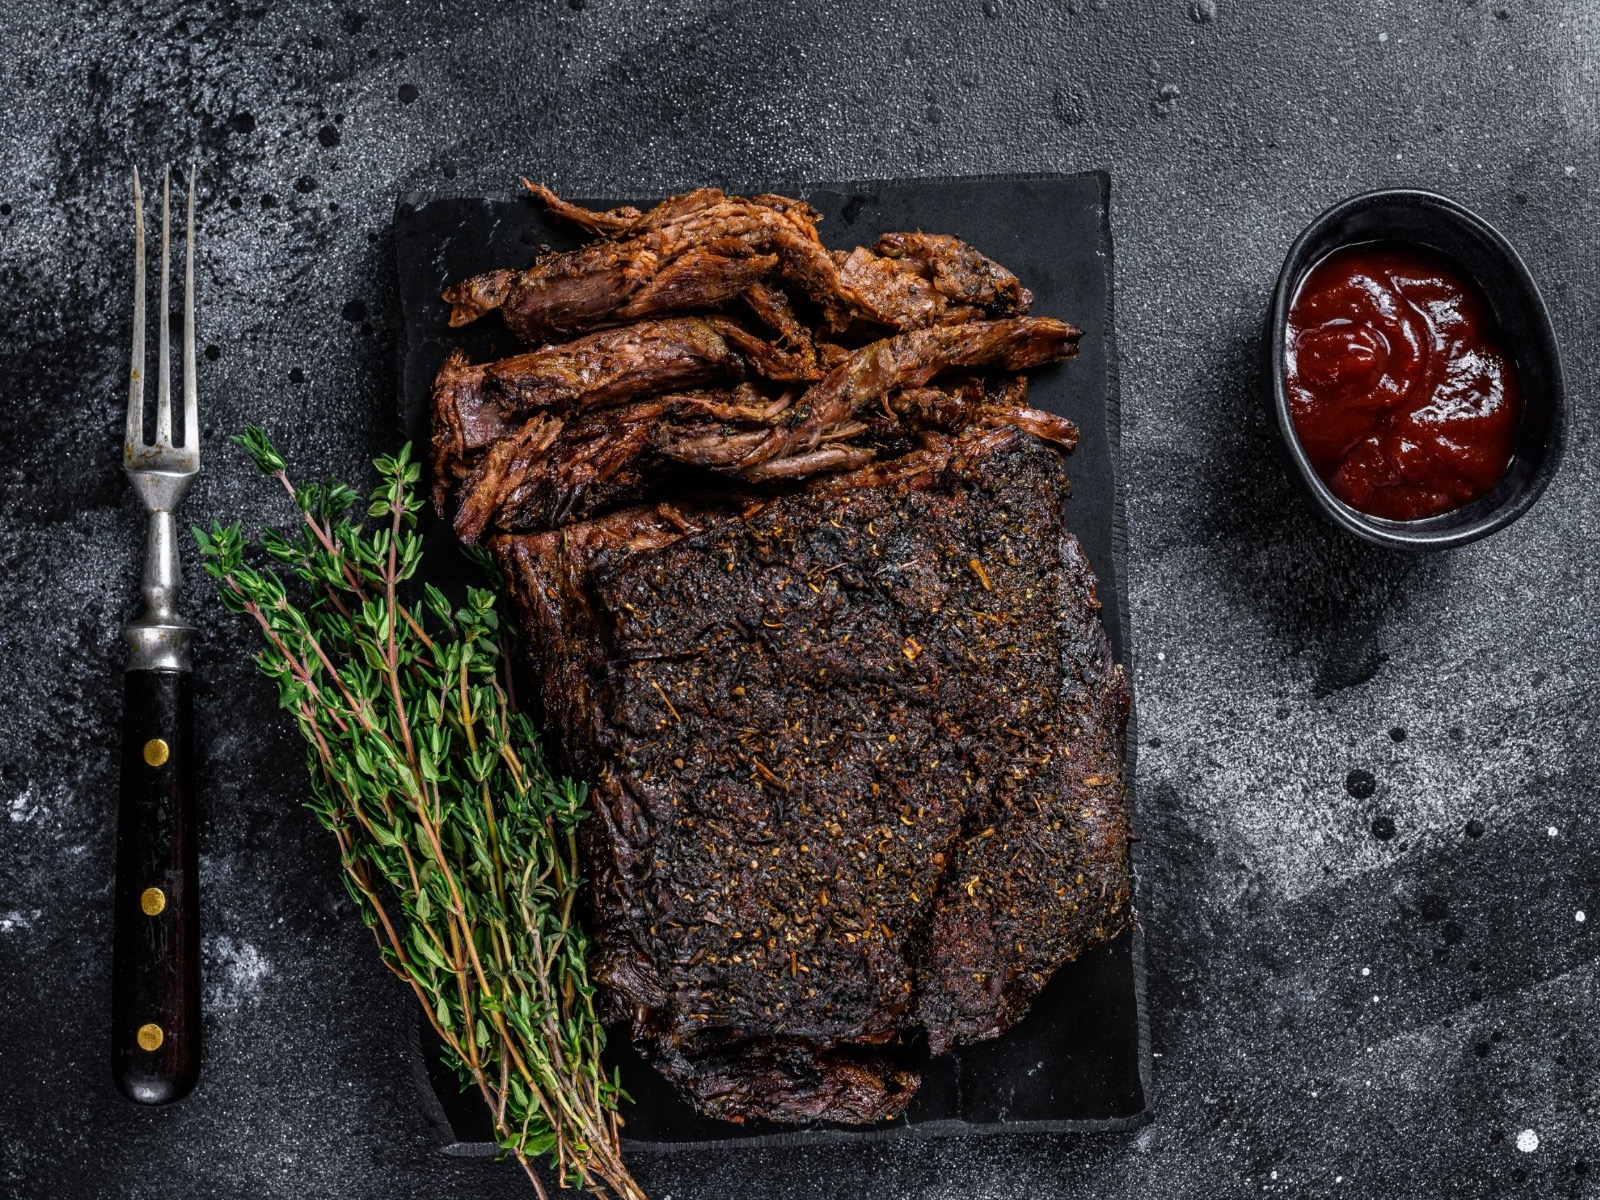 Instant Pot BBQ Brisket With Bison Or American Wagyu Beef - Beck & Bulow